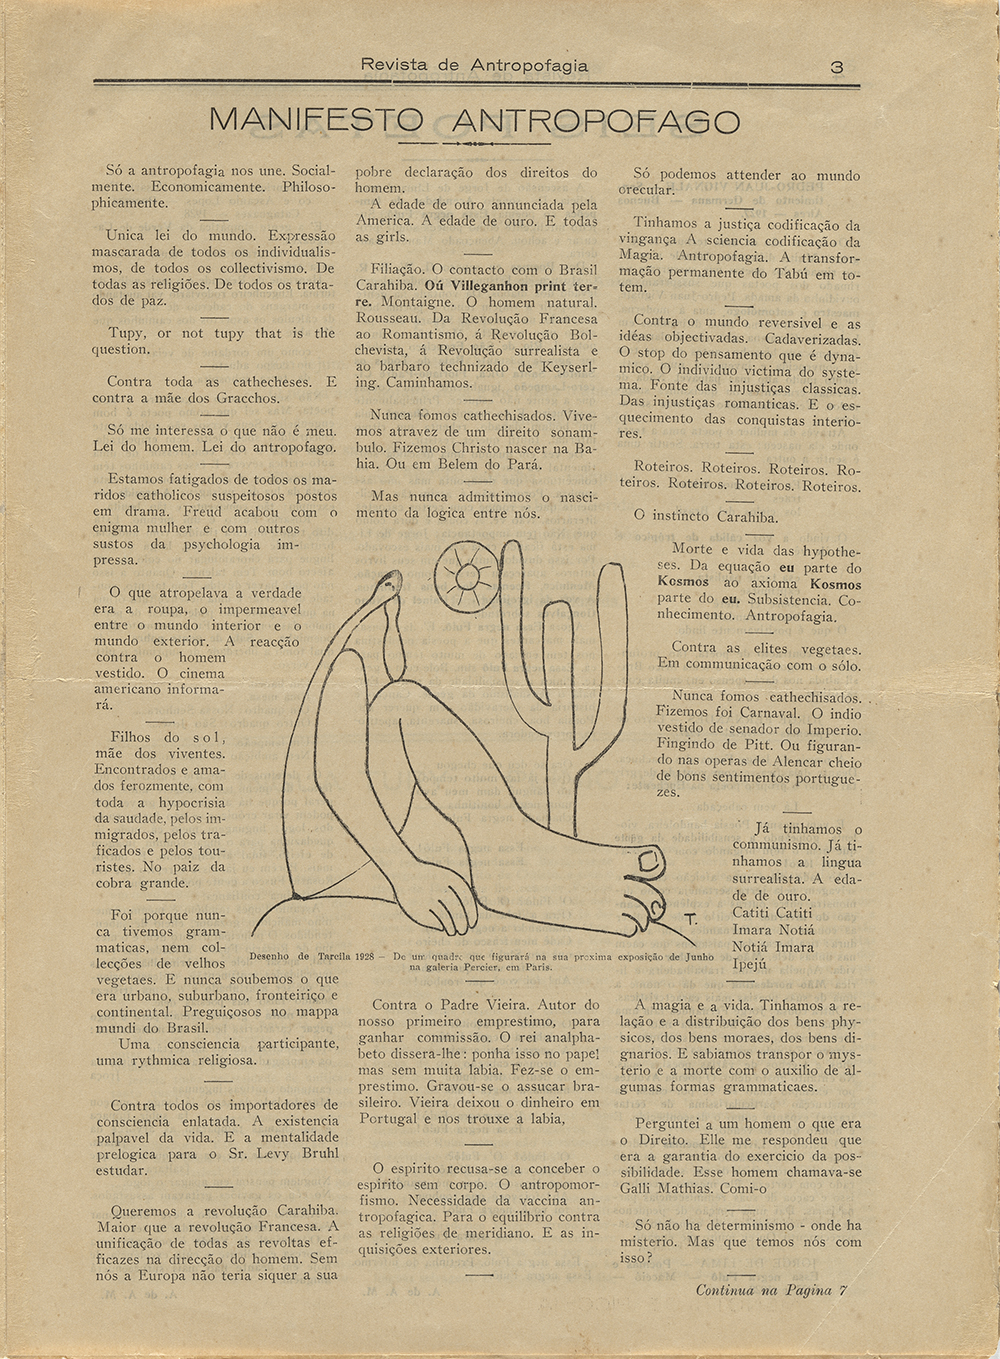 """Oswald de Andrade (Brazilian, 1890–1954) with drawing by Tarsila do Amaral. """"Manifesto antropófago"""" (Manifesto of Anthropophagy), in Revista de Antropofagia 1, no. 1 (May 1928):3. The Museum of Modern Art Library. Gift of Patricia Phelps de Cisneros through the Latin American and Caribbean Fund in honor of Paulo Herkenhoff. Photo by John Wronn."""